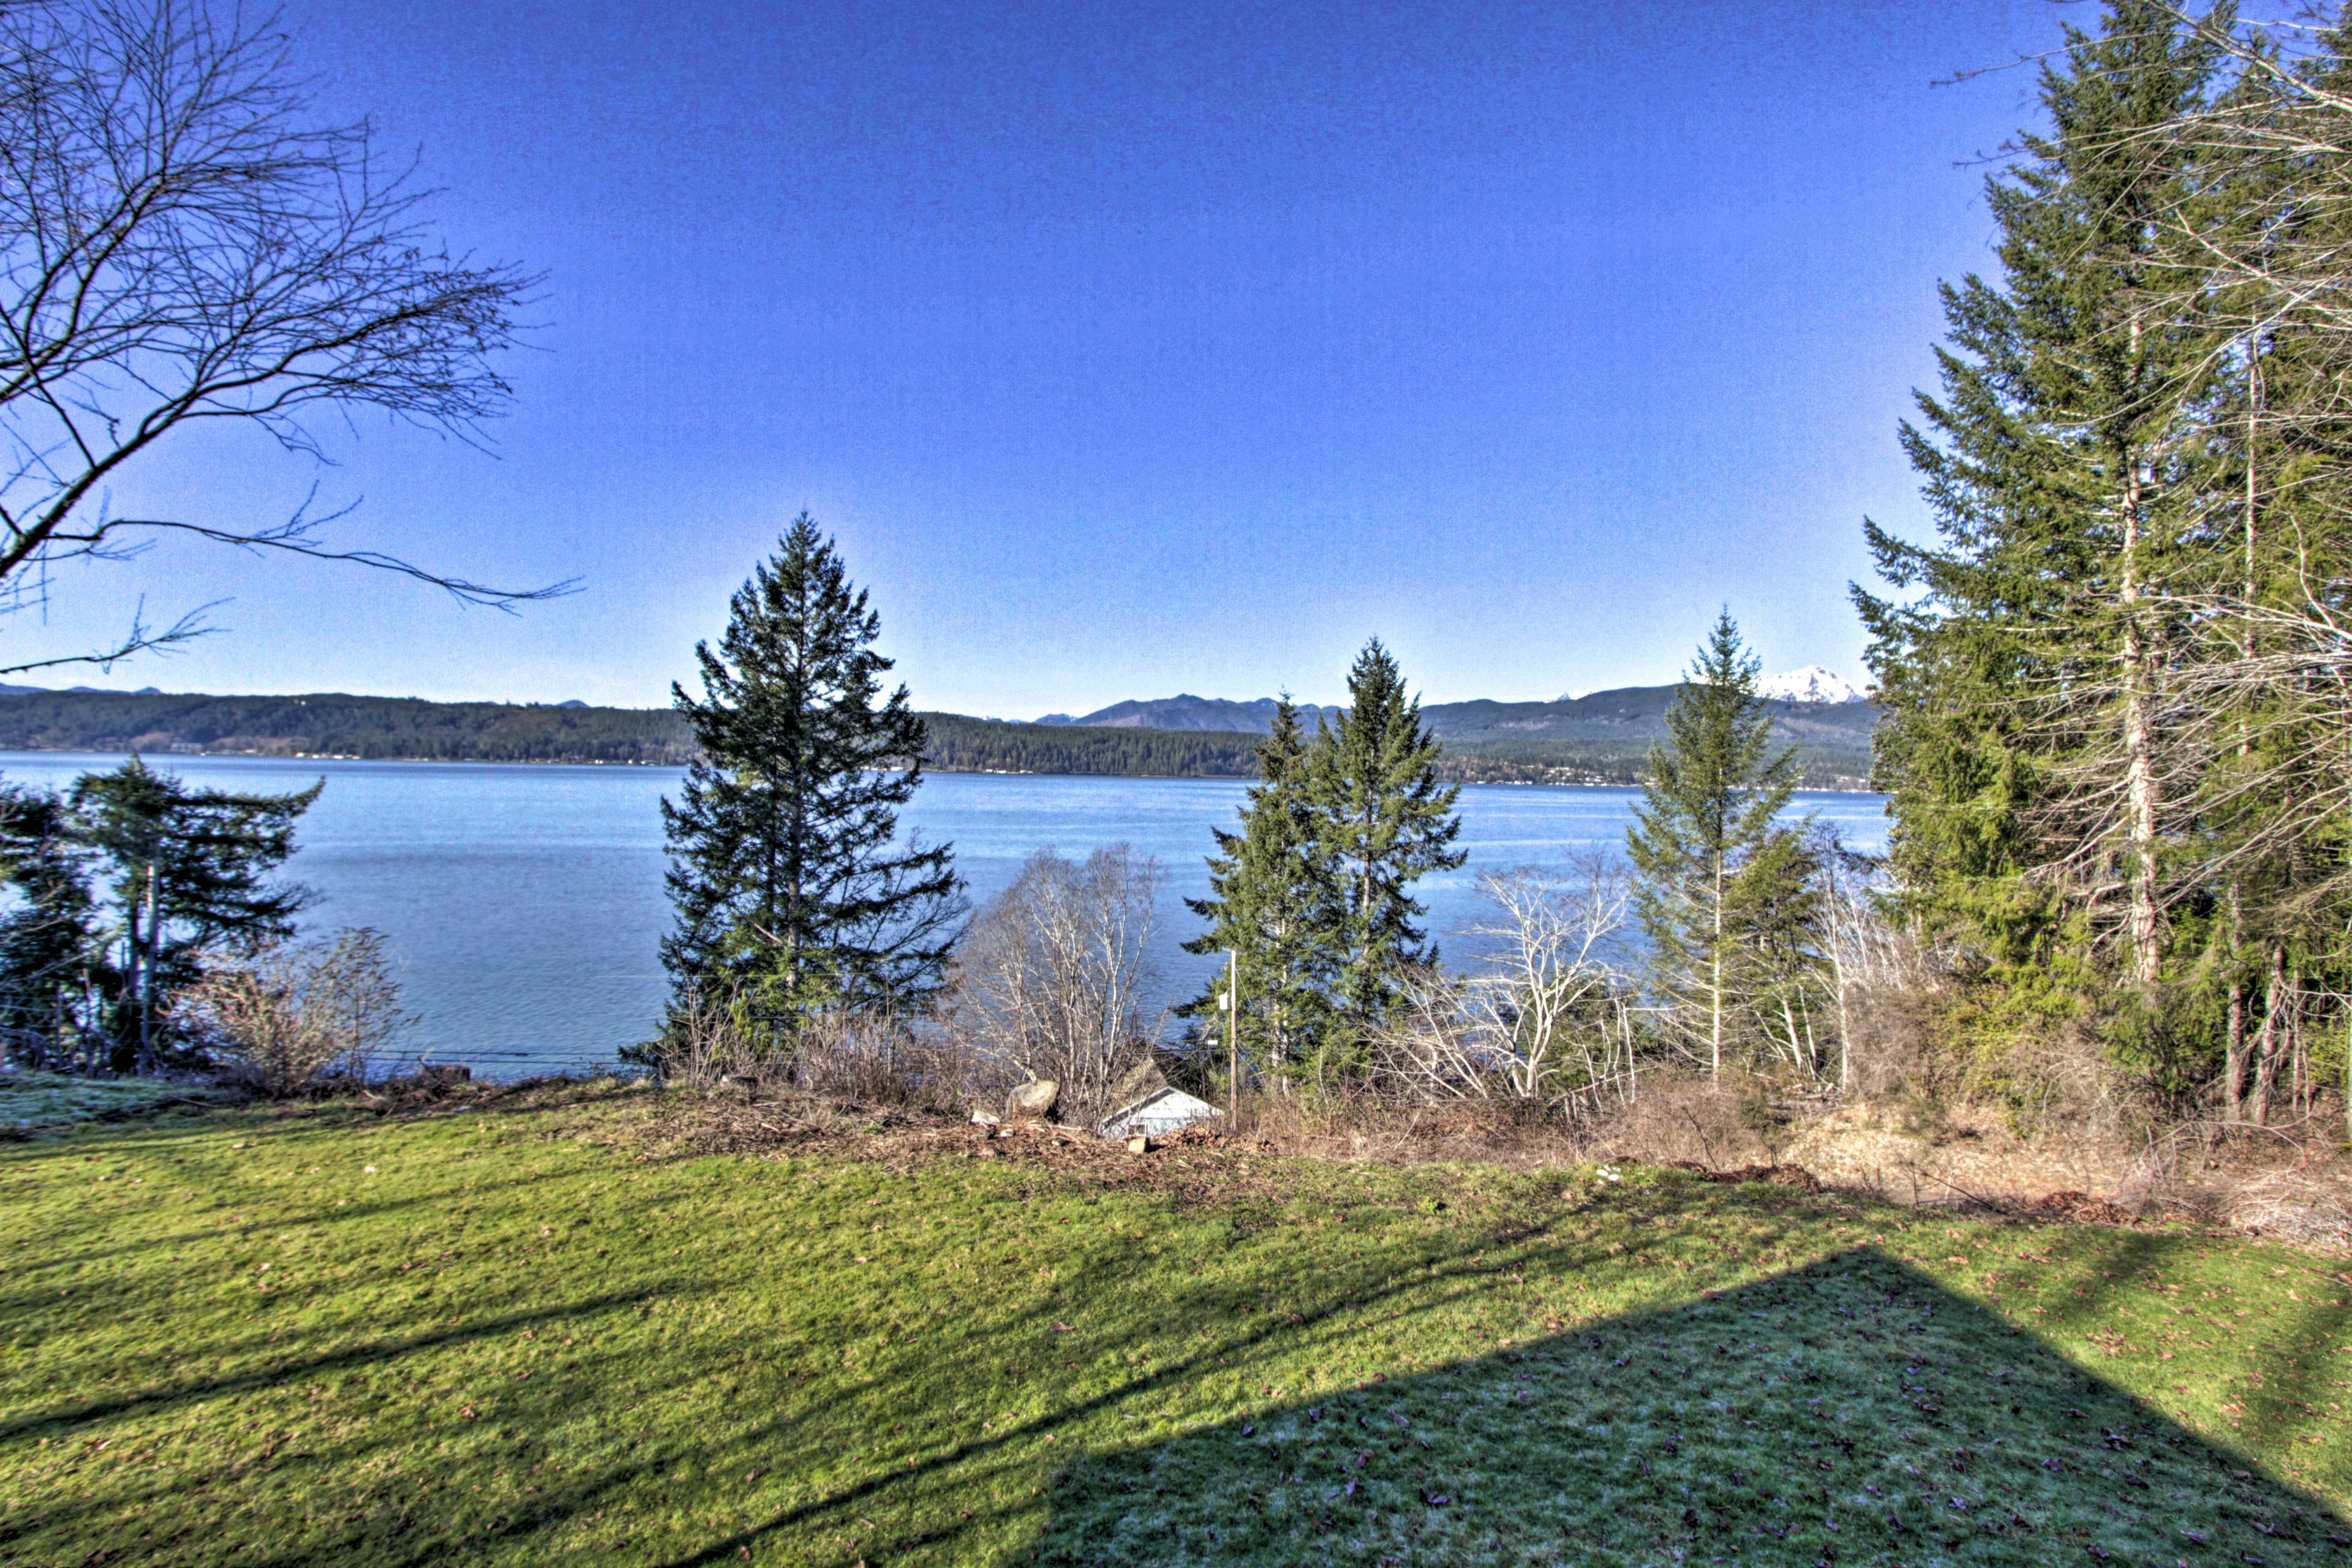 Up to 6 guests can admire the views of the Olympic Mountains.